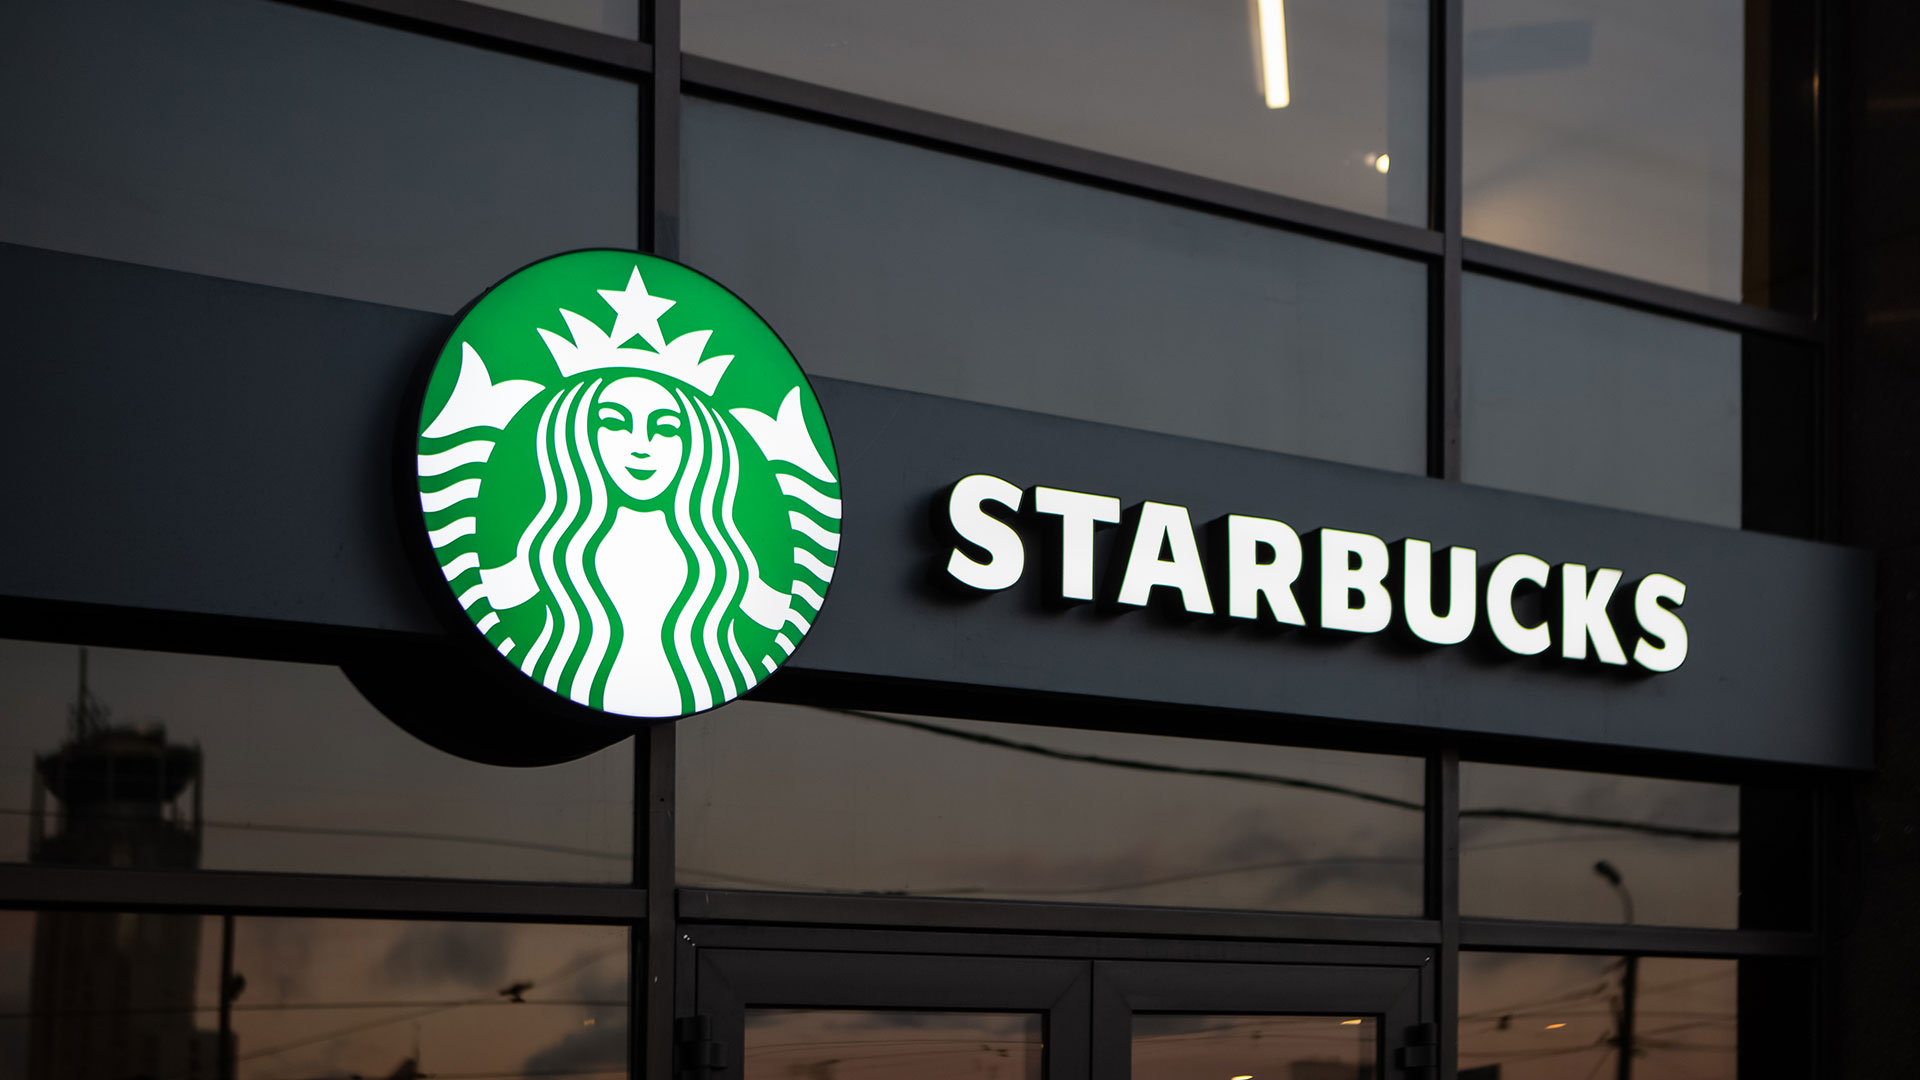 #BoycottStarbucks Trends After Coffee Chain Prevents Employees from Wearing BLM Attire